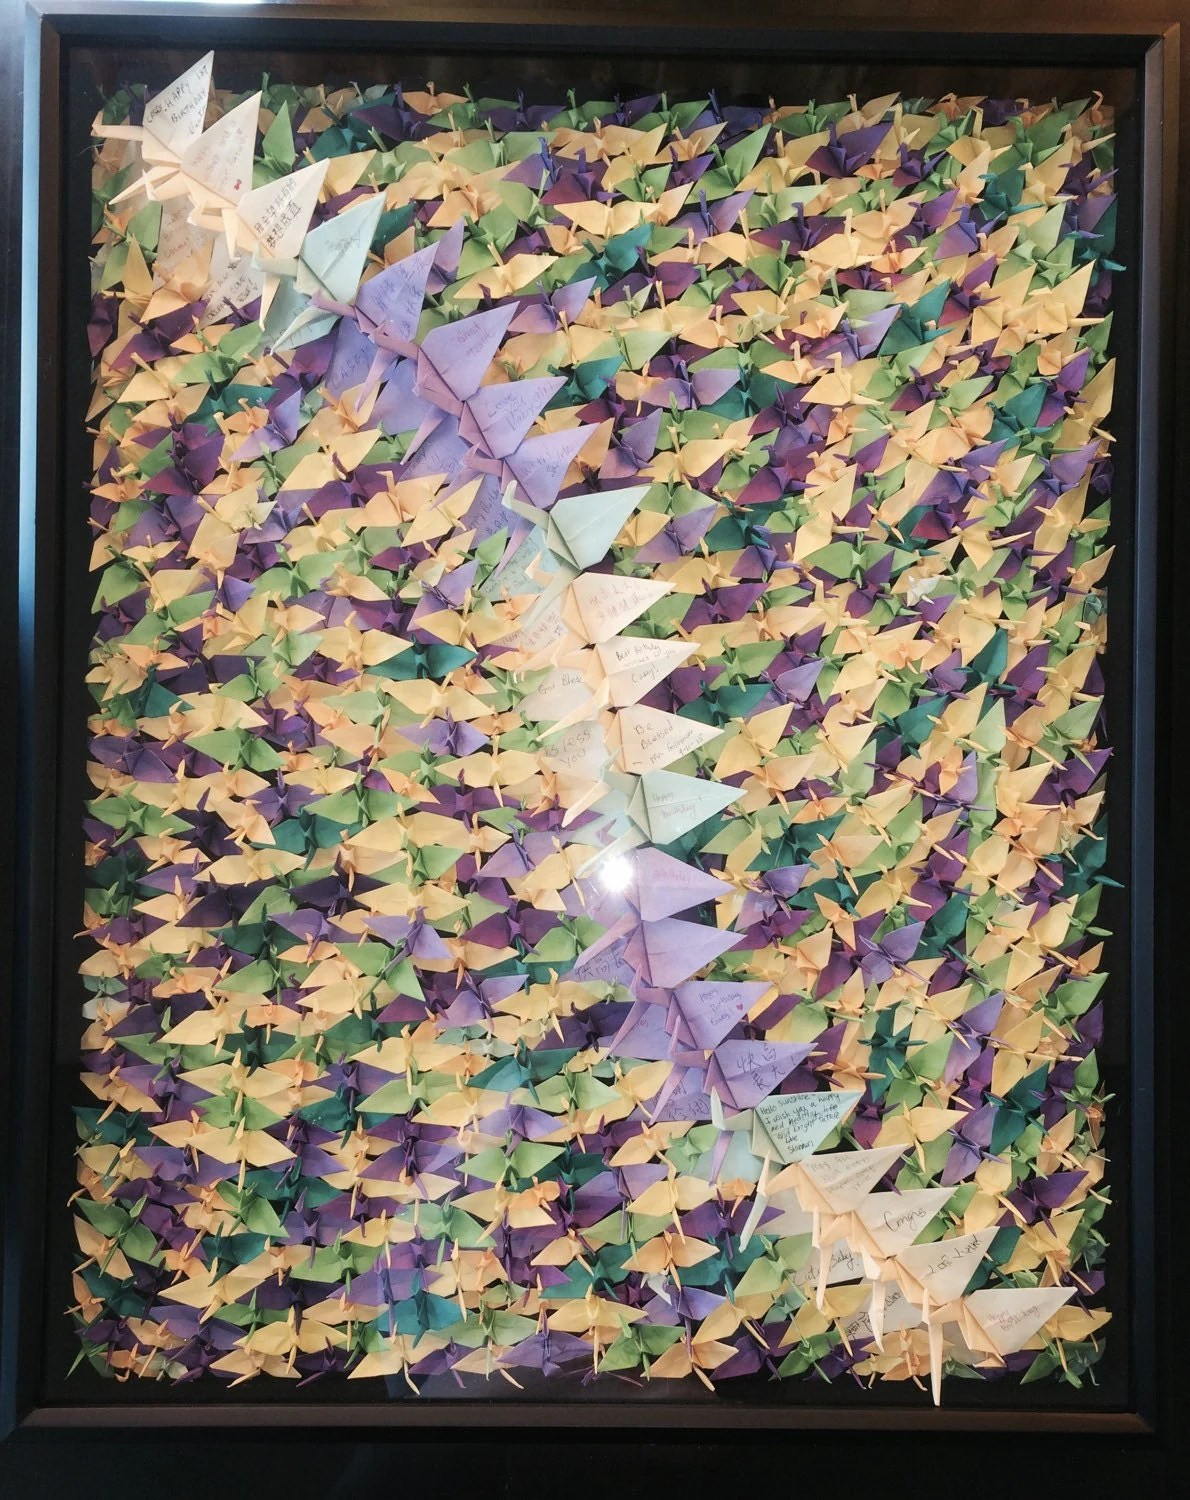 1000 origami cranes art in glass frame by OrigamiByWingy on Etsy